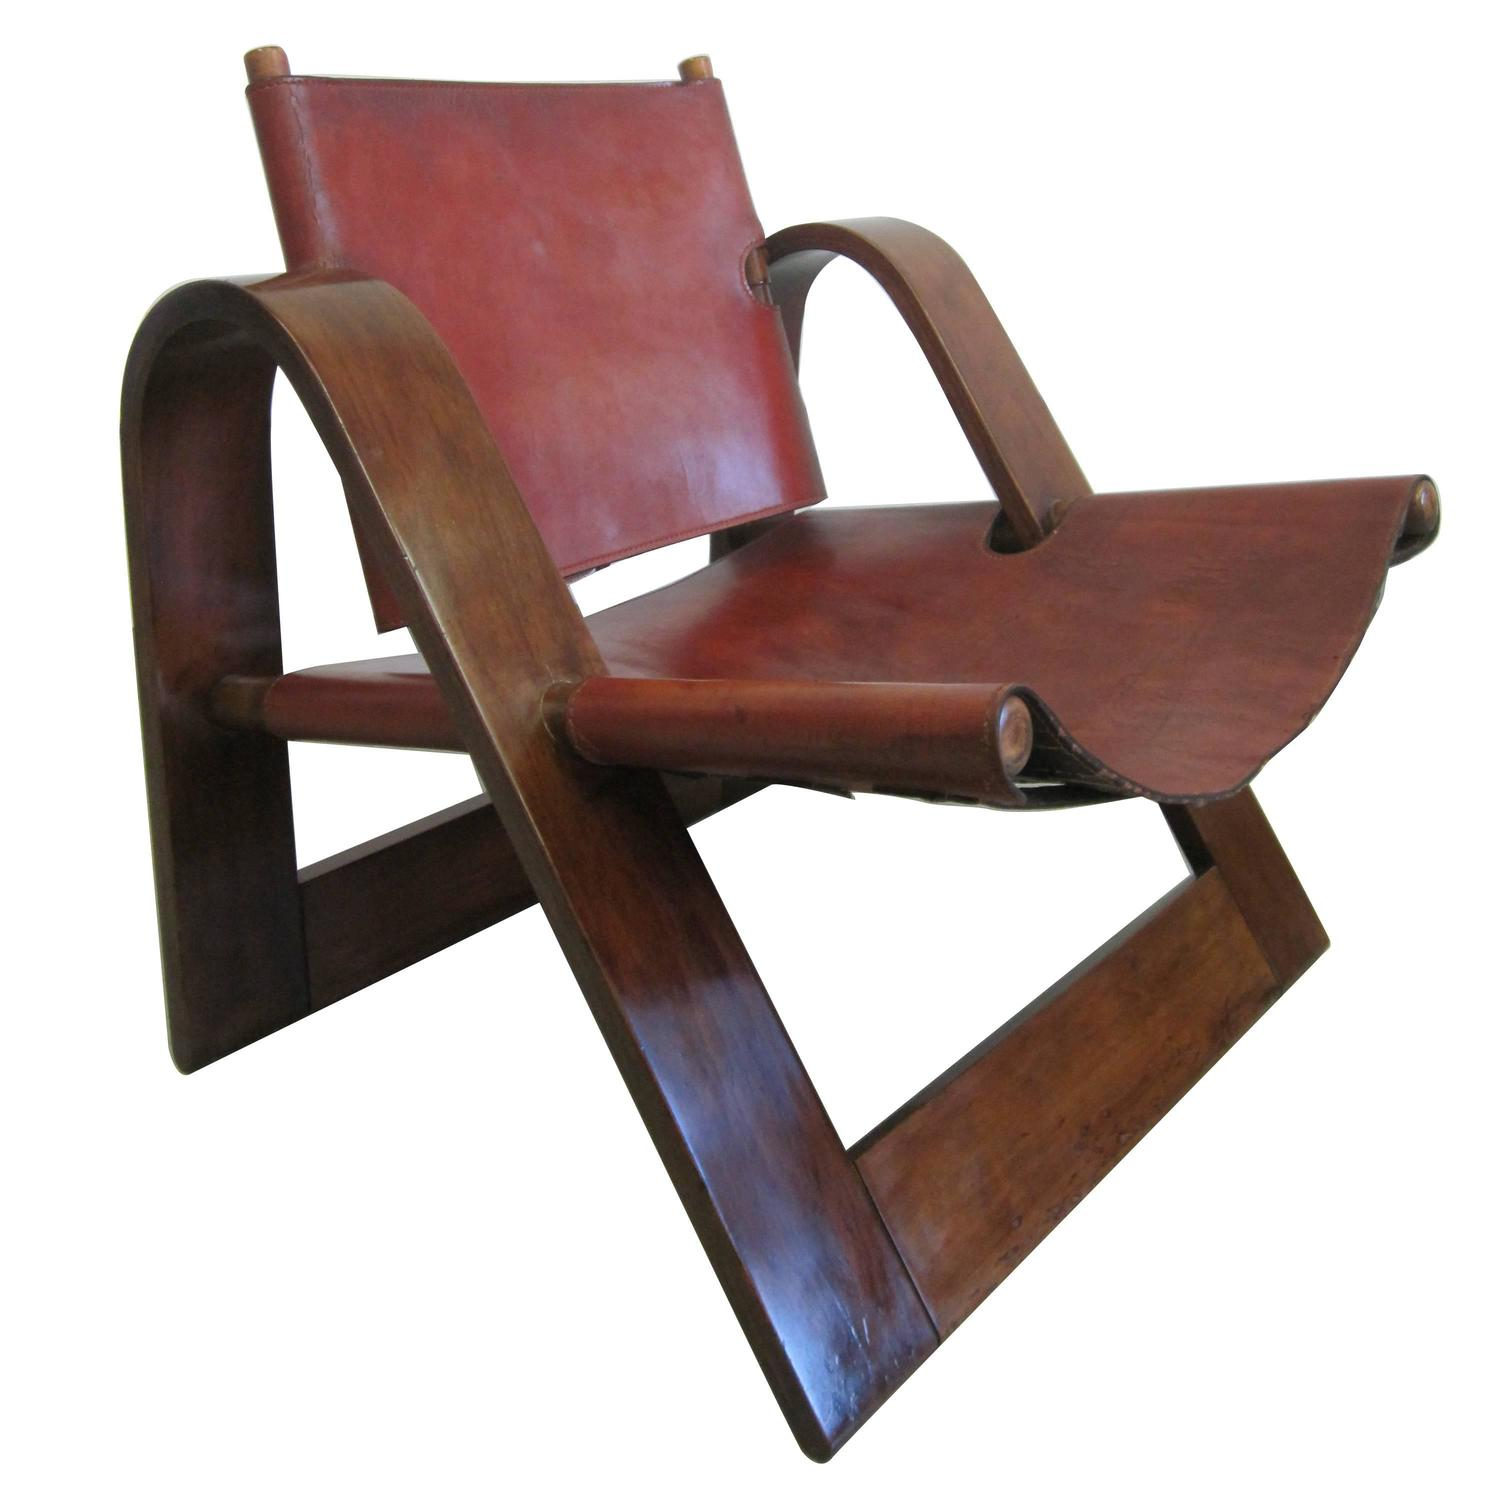 Danish Modern Leather Strap Chair Attributed to Borge Mogensen For